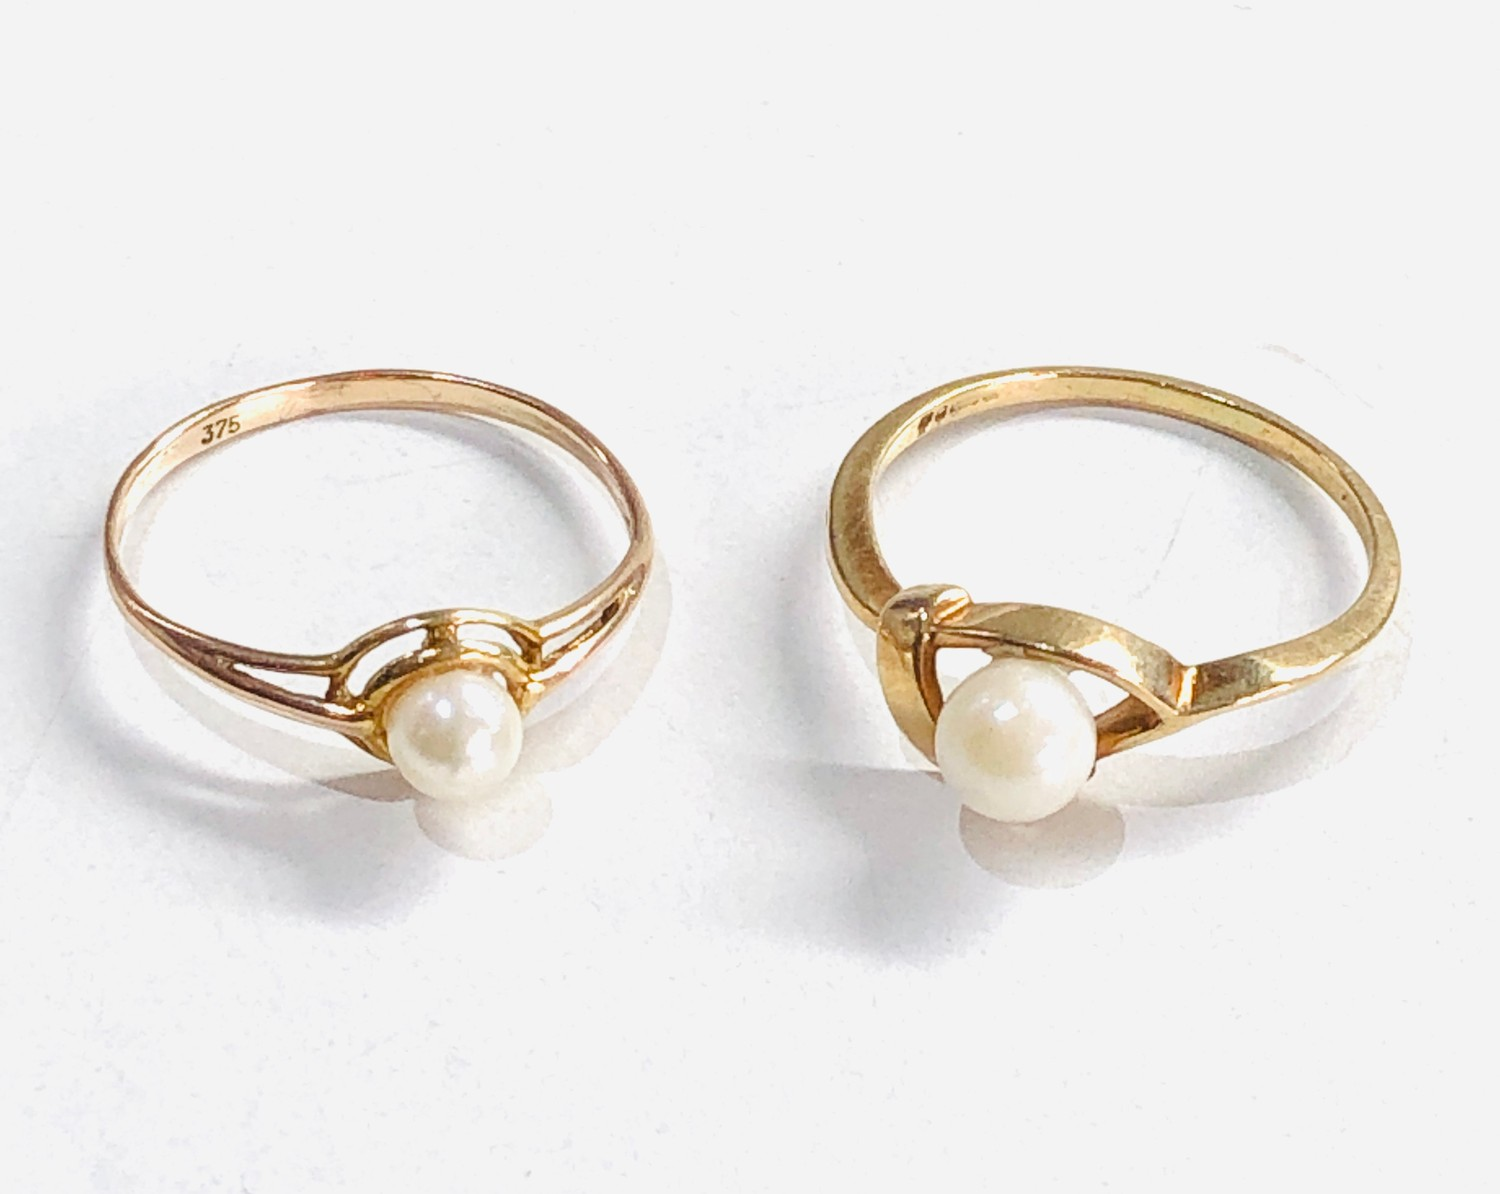 2 x 9ct gold pearl rings 1.8g